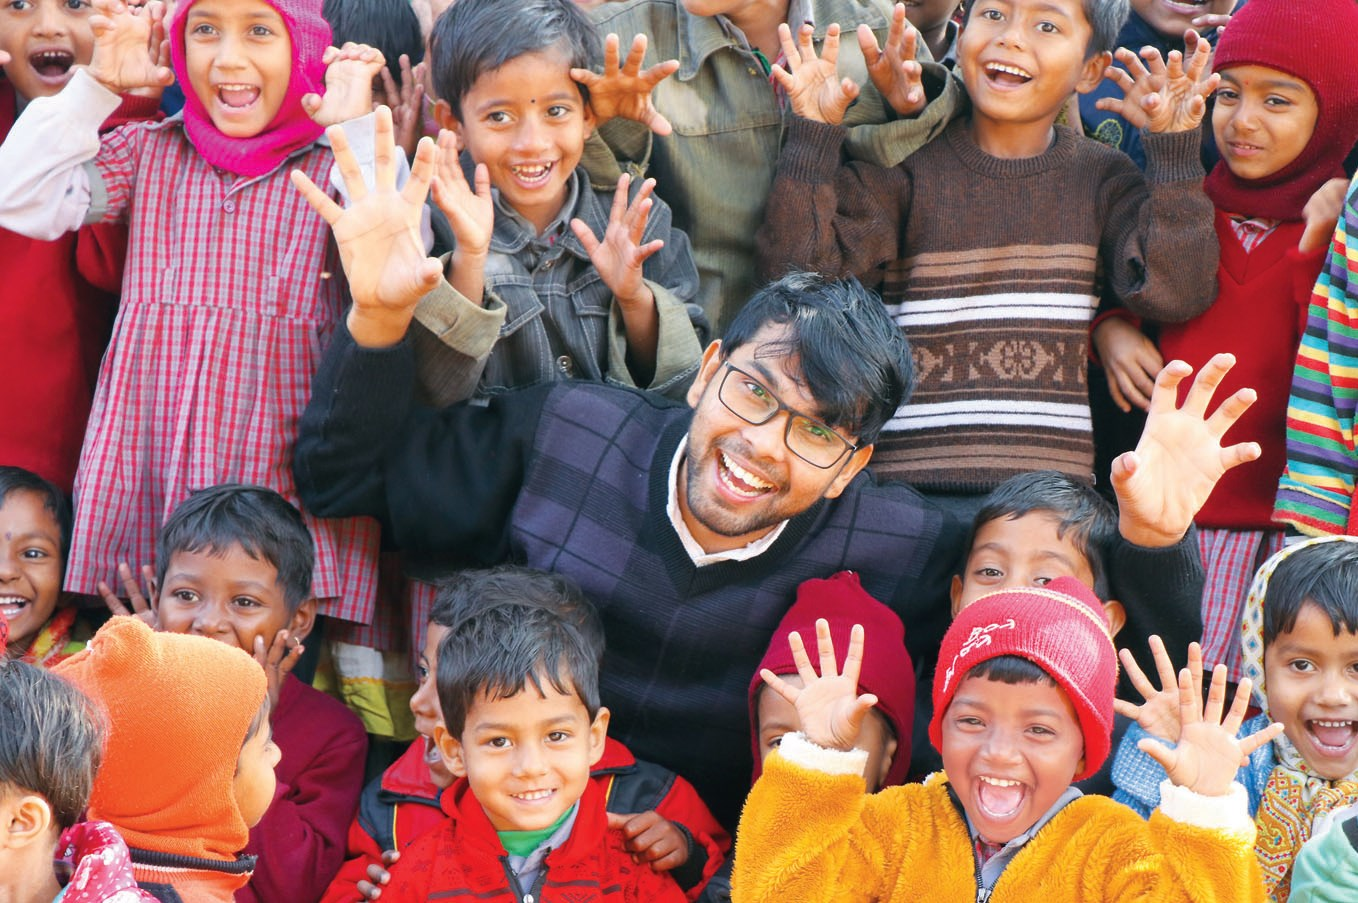 Dnyaneshwar Yeotkar shares a light moment with children in Bolpur, India. On his trips, Yeotkar spends time with children in schools and the sick in hospitals.